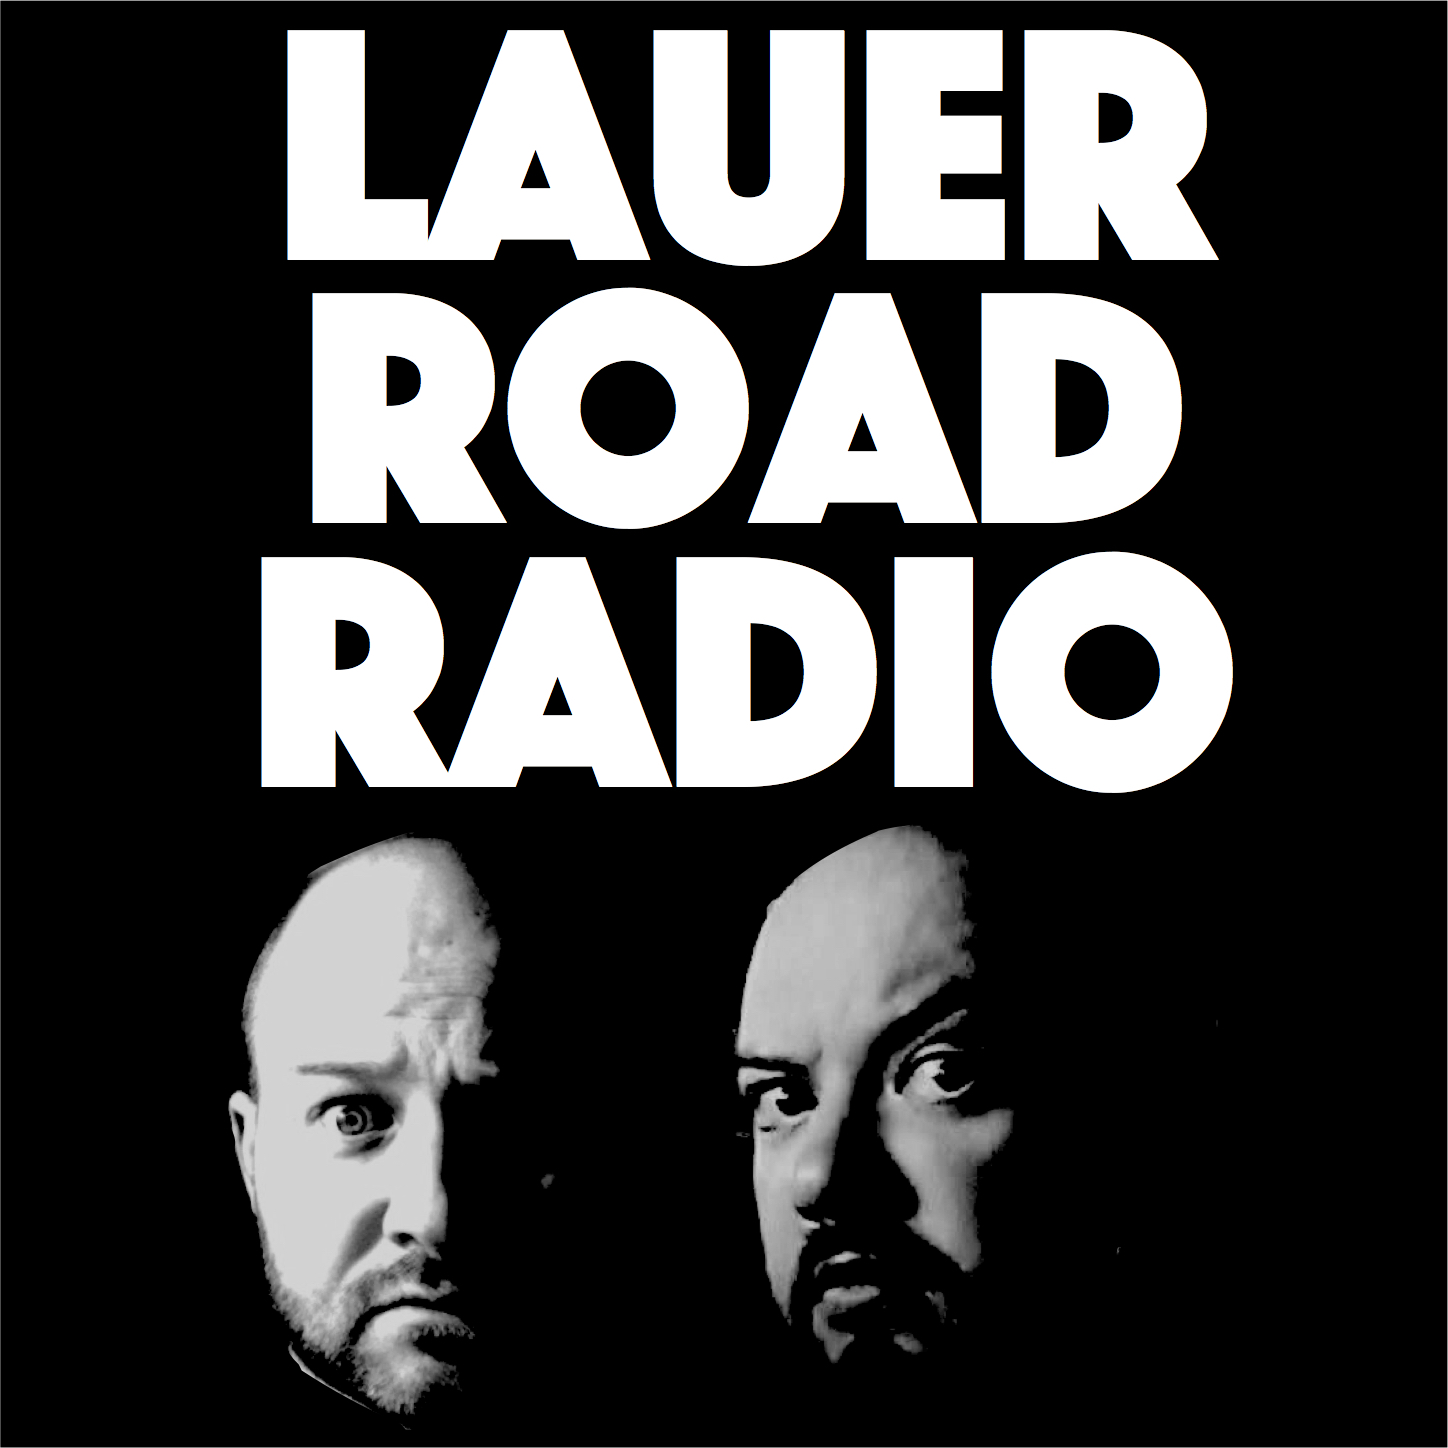 Lauer Road Radio